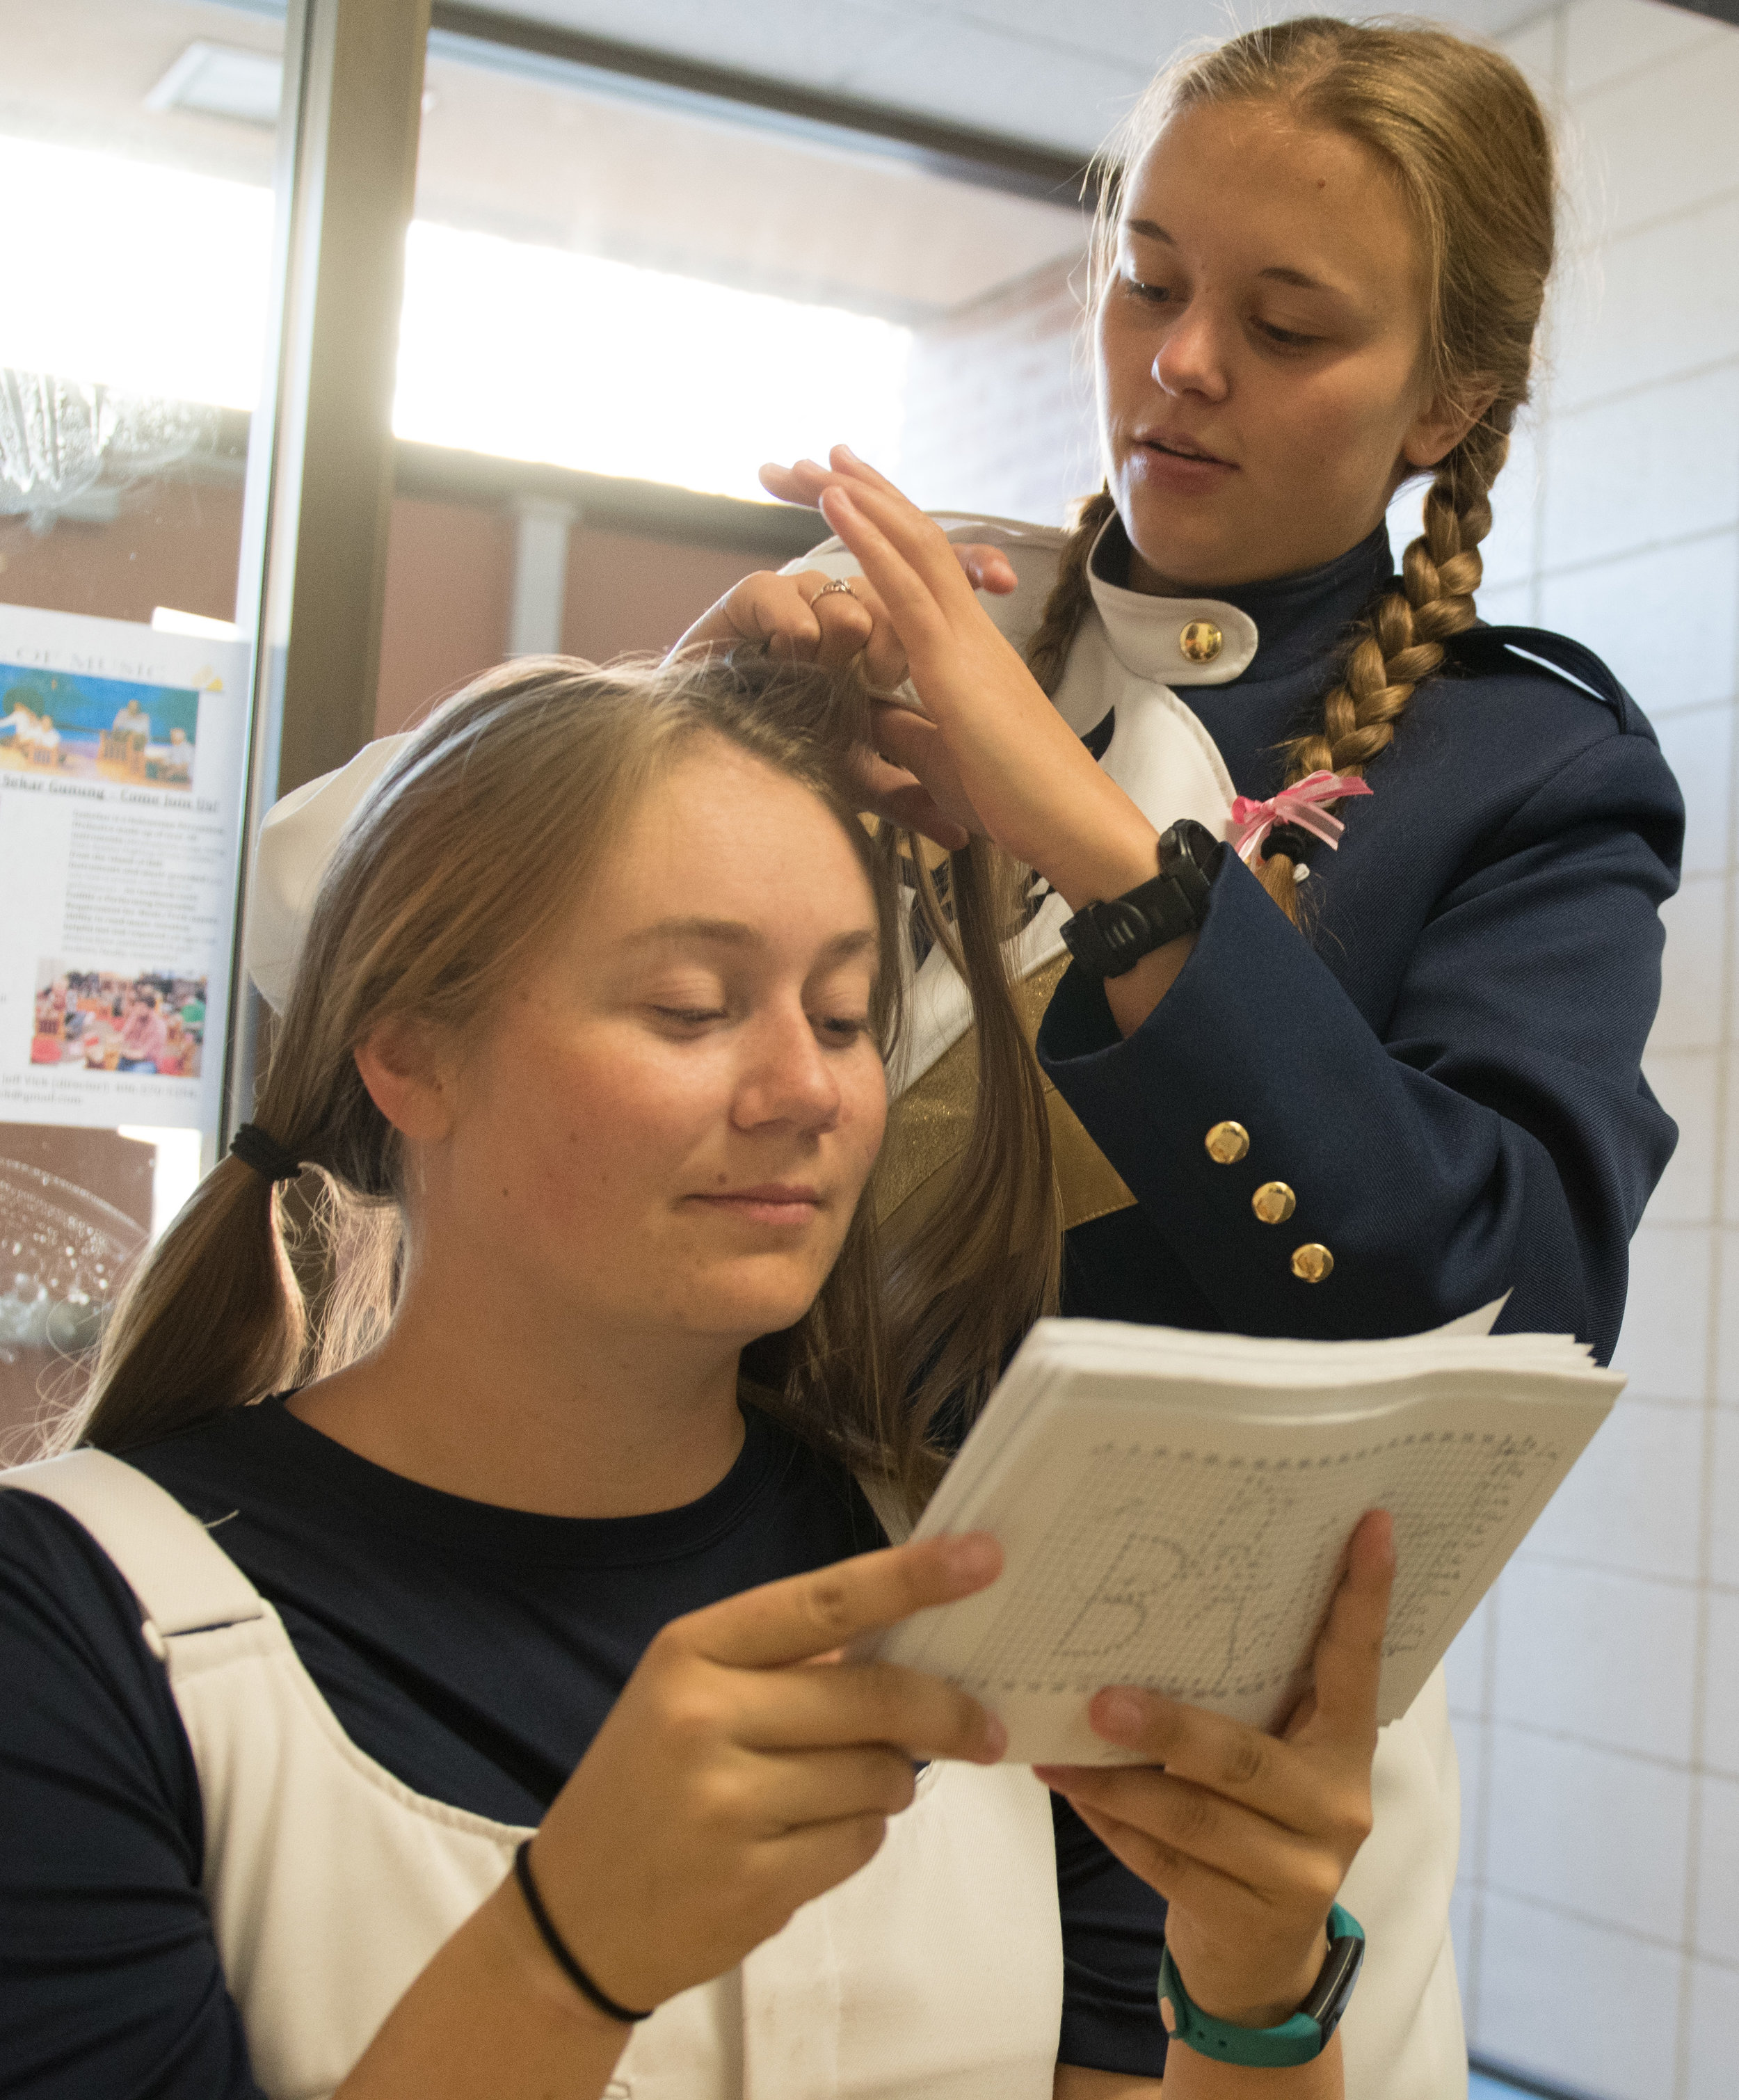 Spirit of the West drum major Jessica Johnson, front, looks over position diagrams while fellow drum major Kendra Hergert, back, braids her hair in preparation for a game day performance Saturday, Oct. 28, 2017.